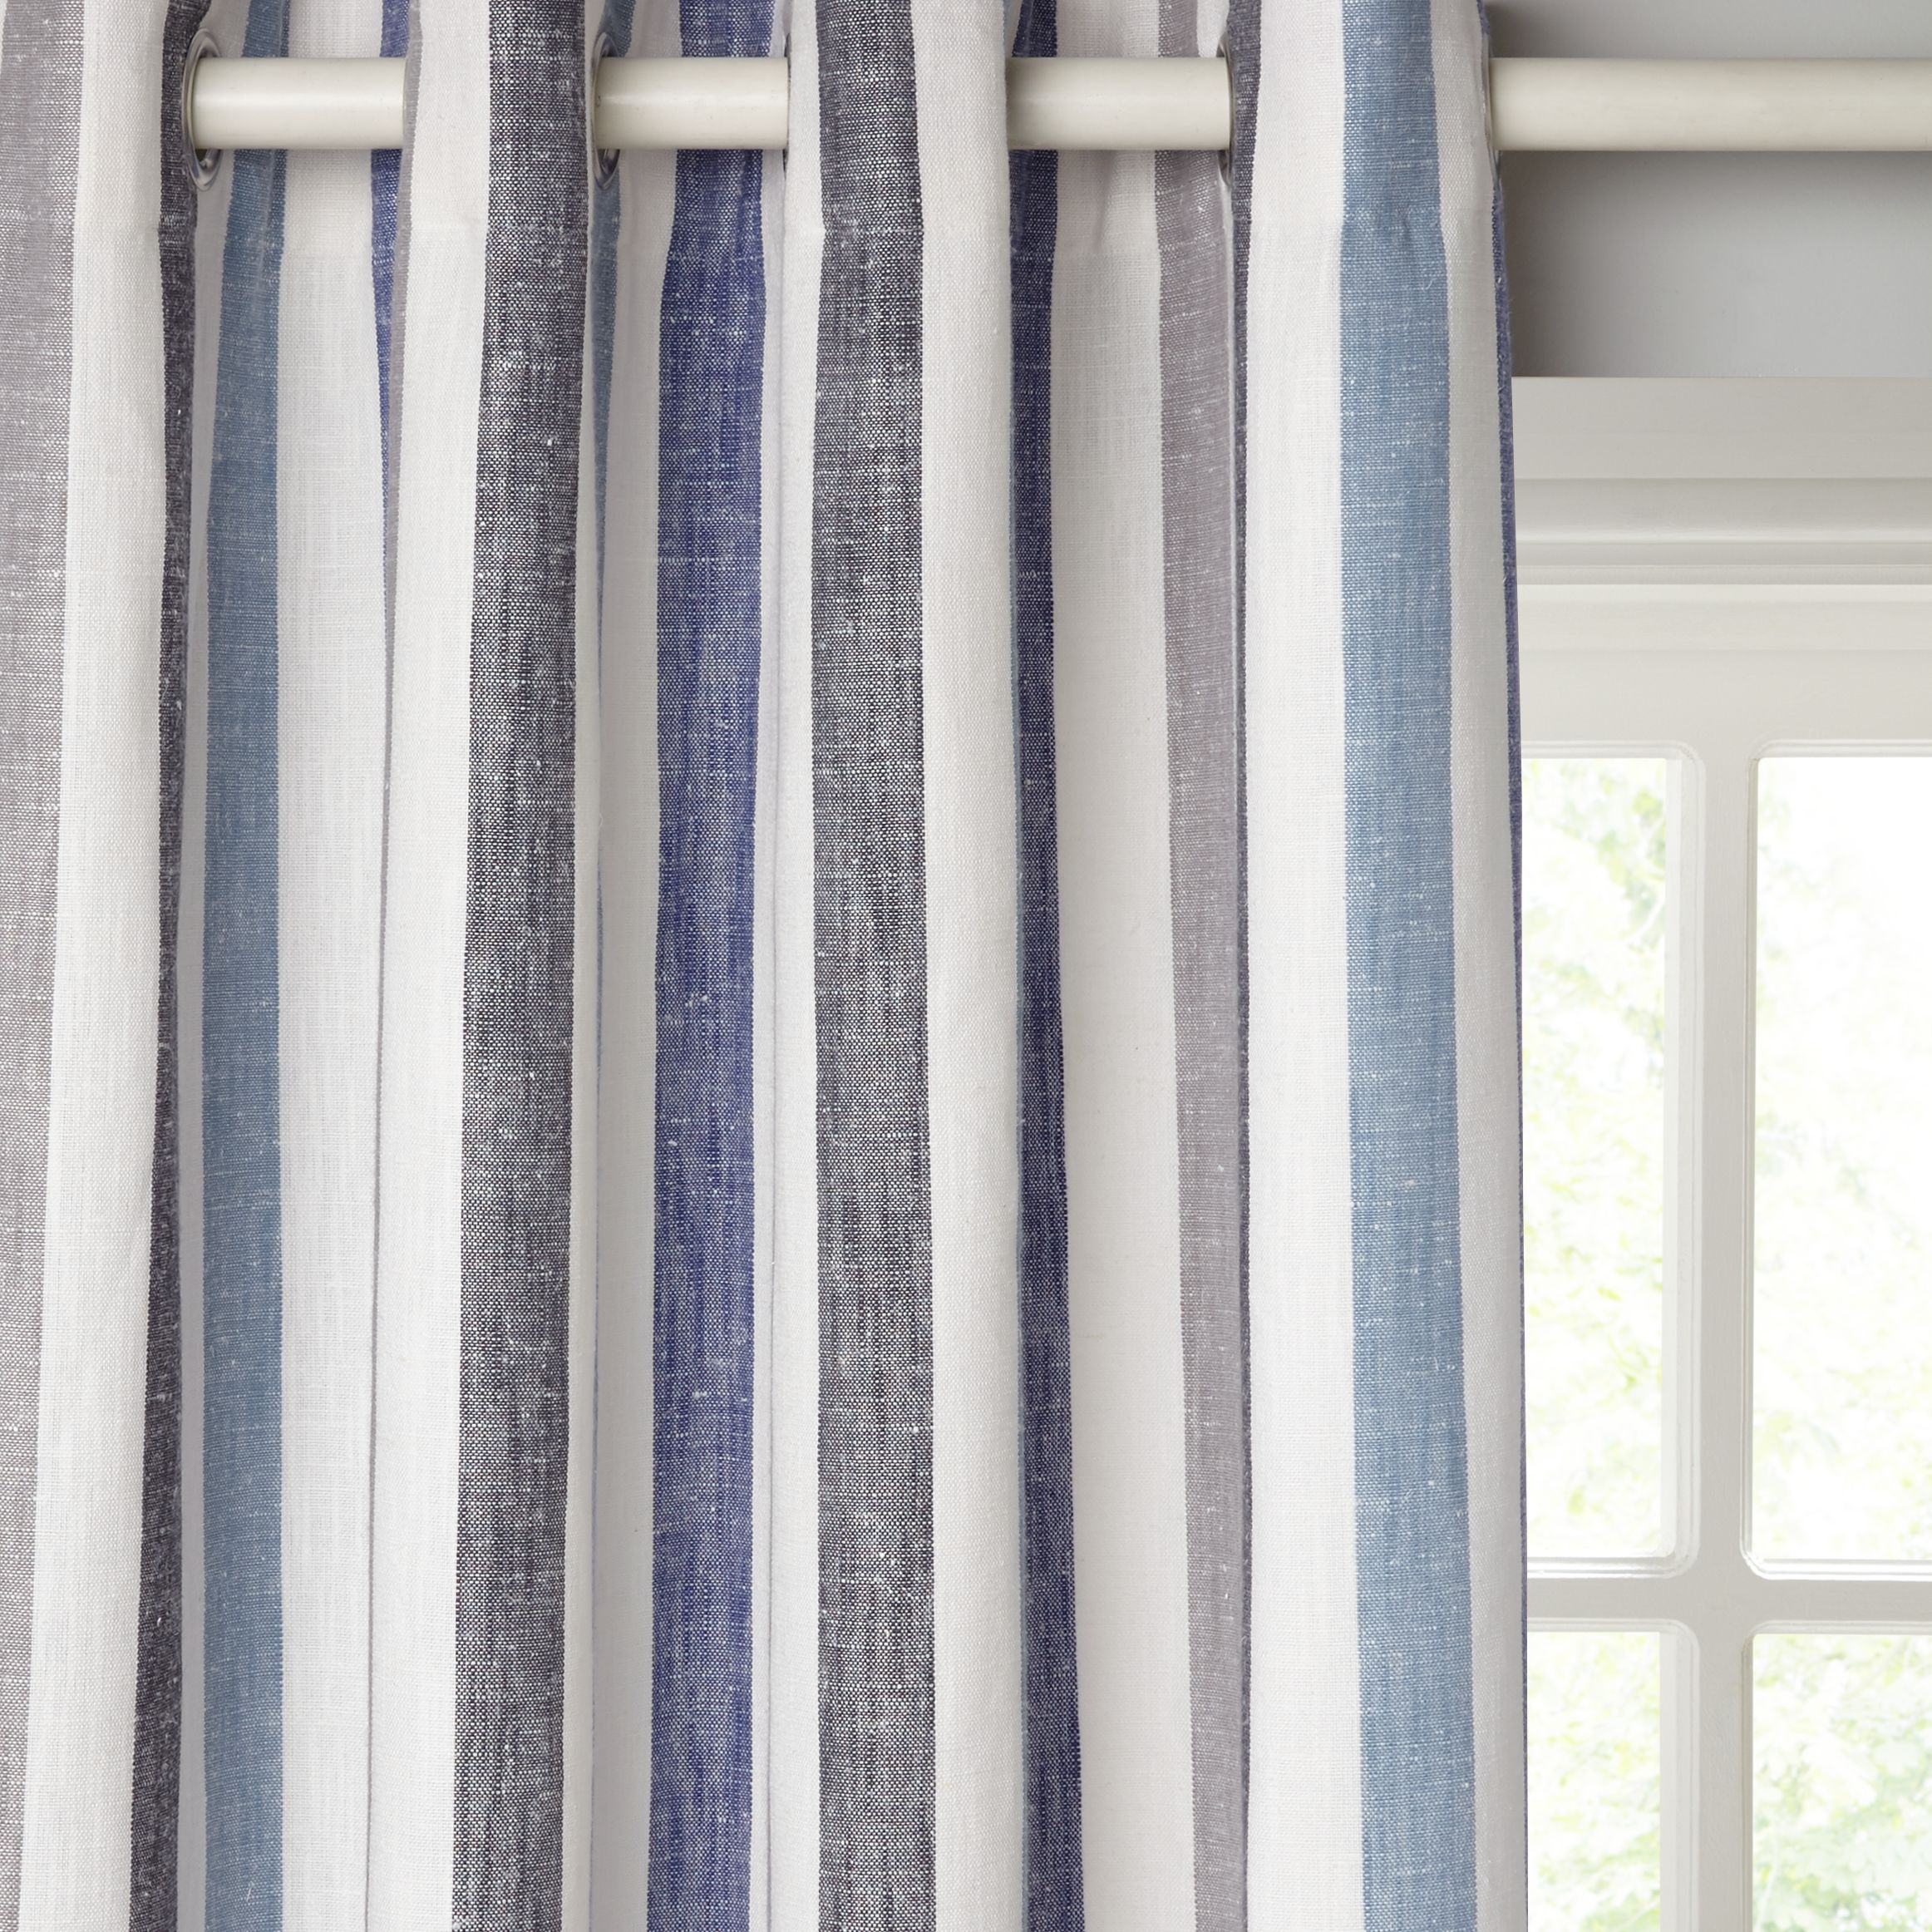 home today overstock panel pair curtain blend ati curtains with grommet gray top free product shipping linen garden branches